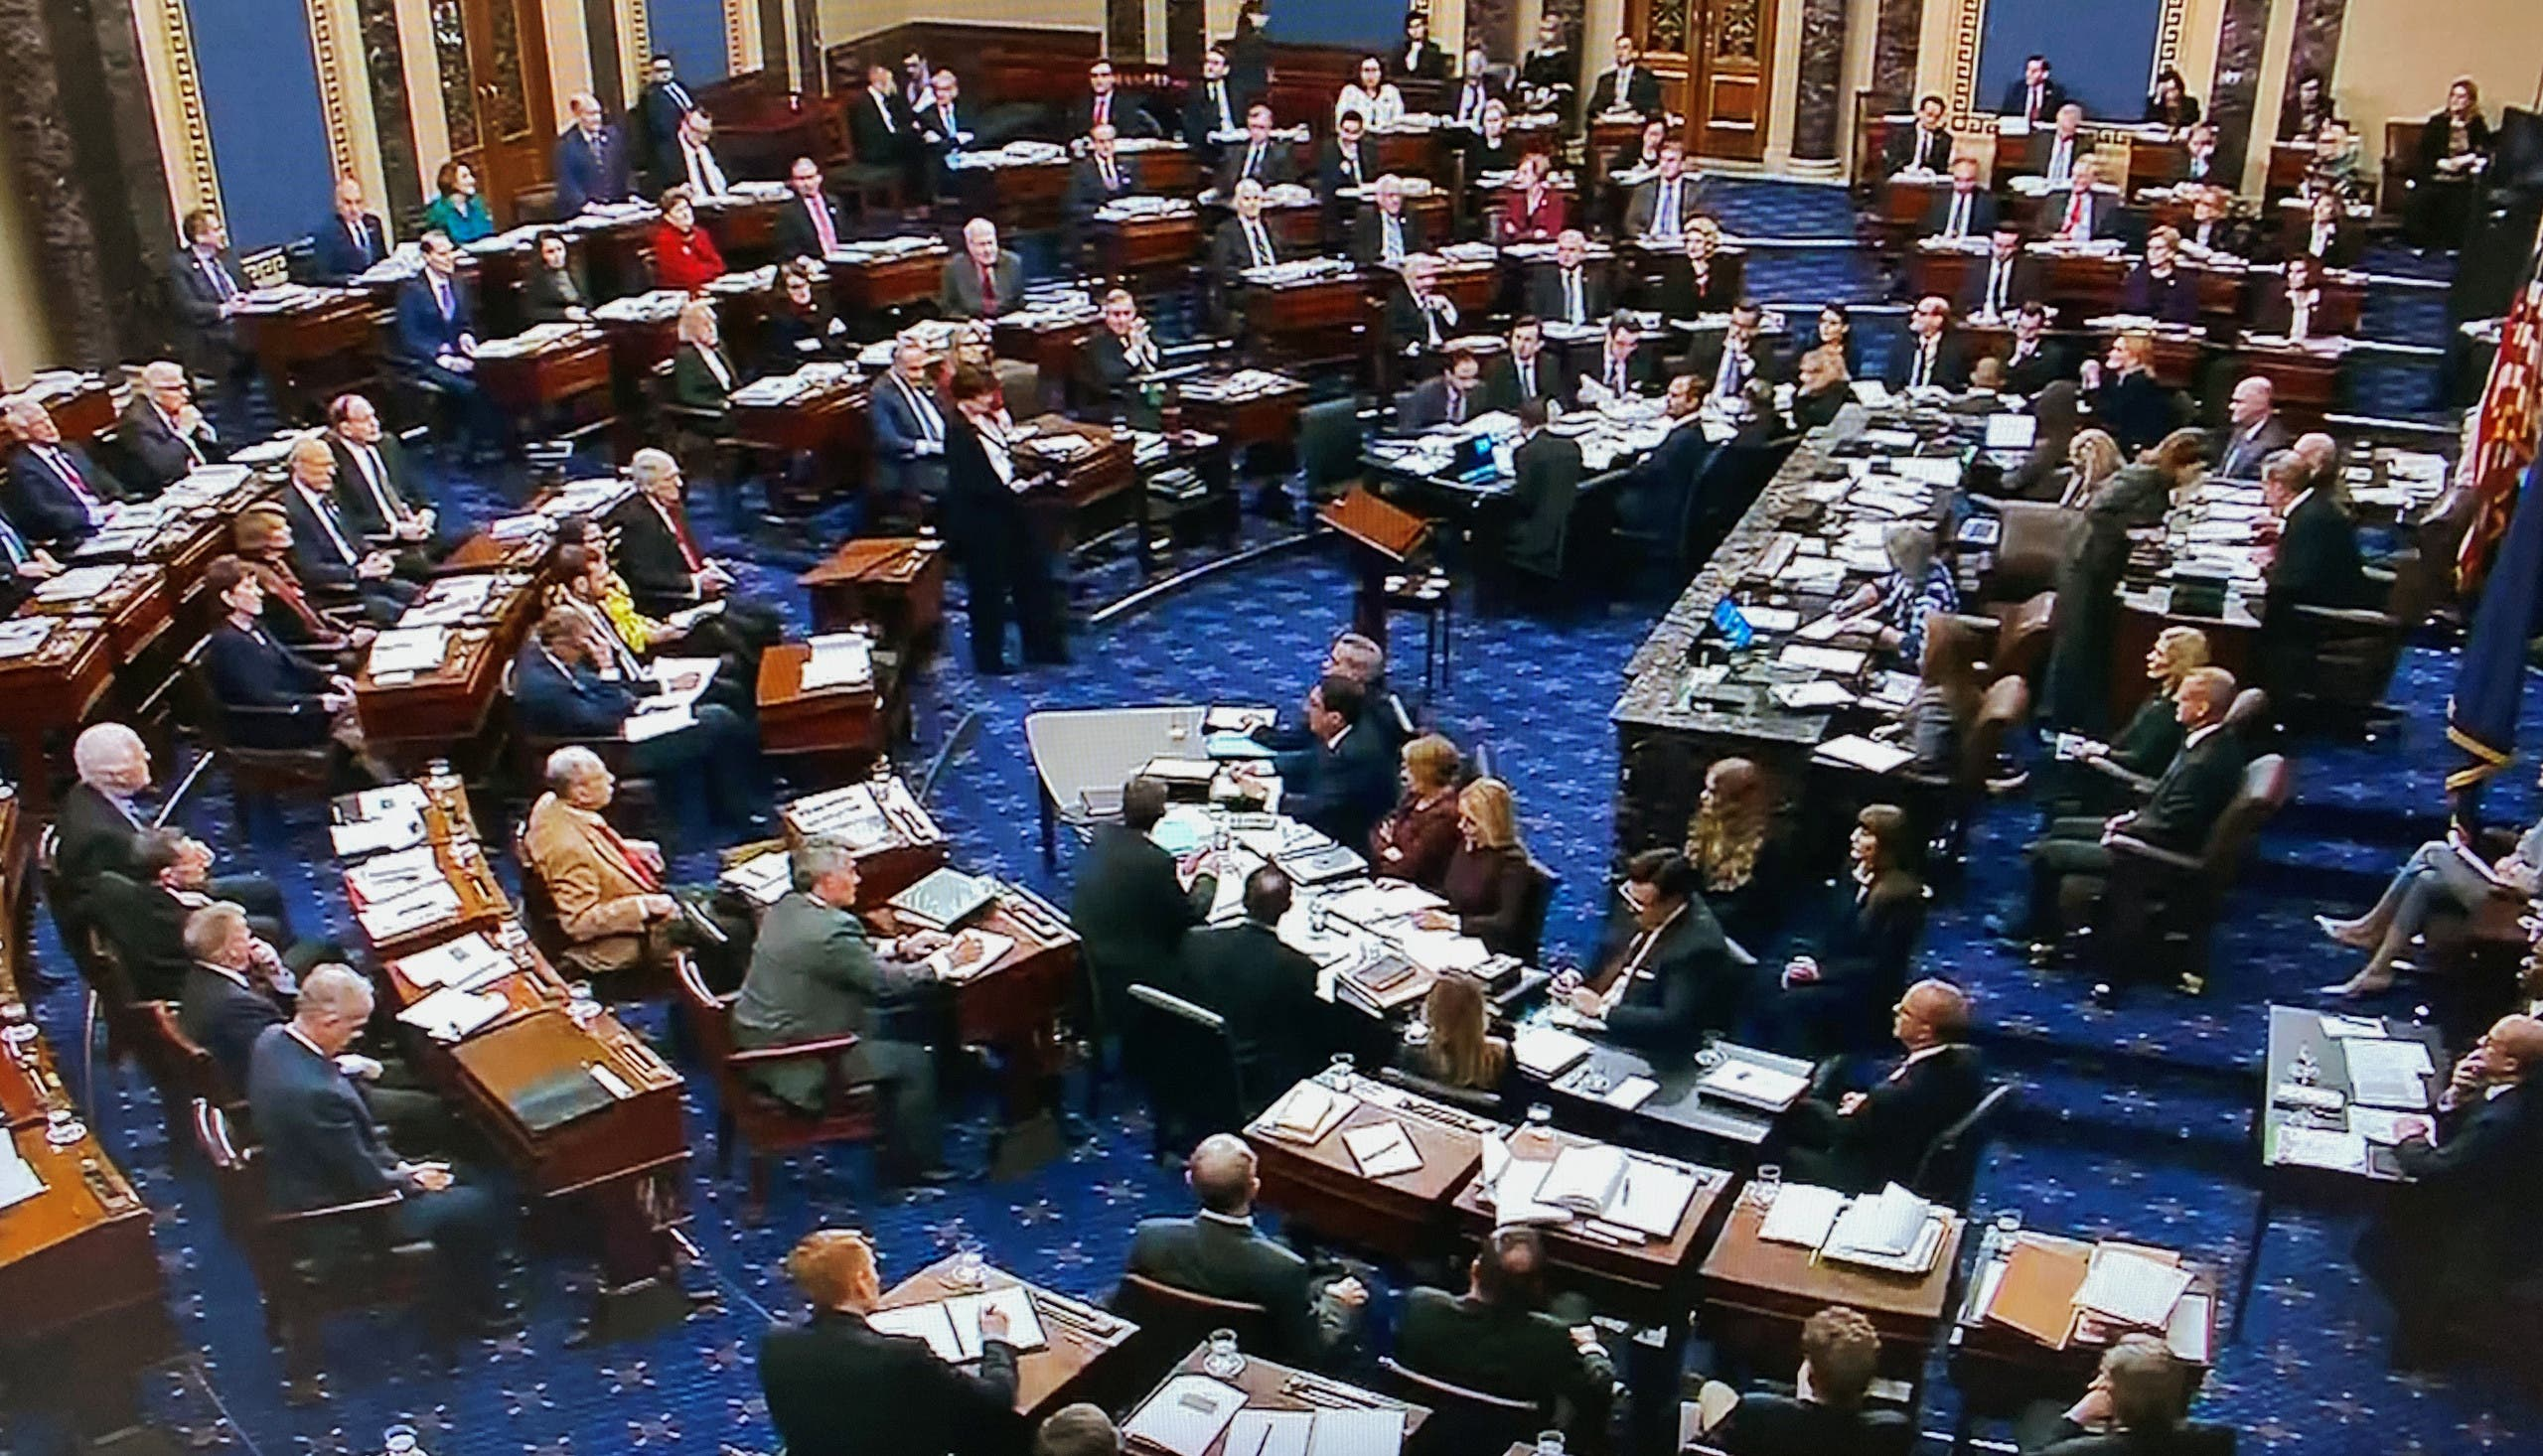 The US Senate votes to table an amendment by Minority Leader Chuck Schumer (D-NY) seeking documents and evidence from the White House during the impeachment trial of President Trump in this frame grab video. (File photo: Reuters)